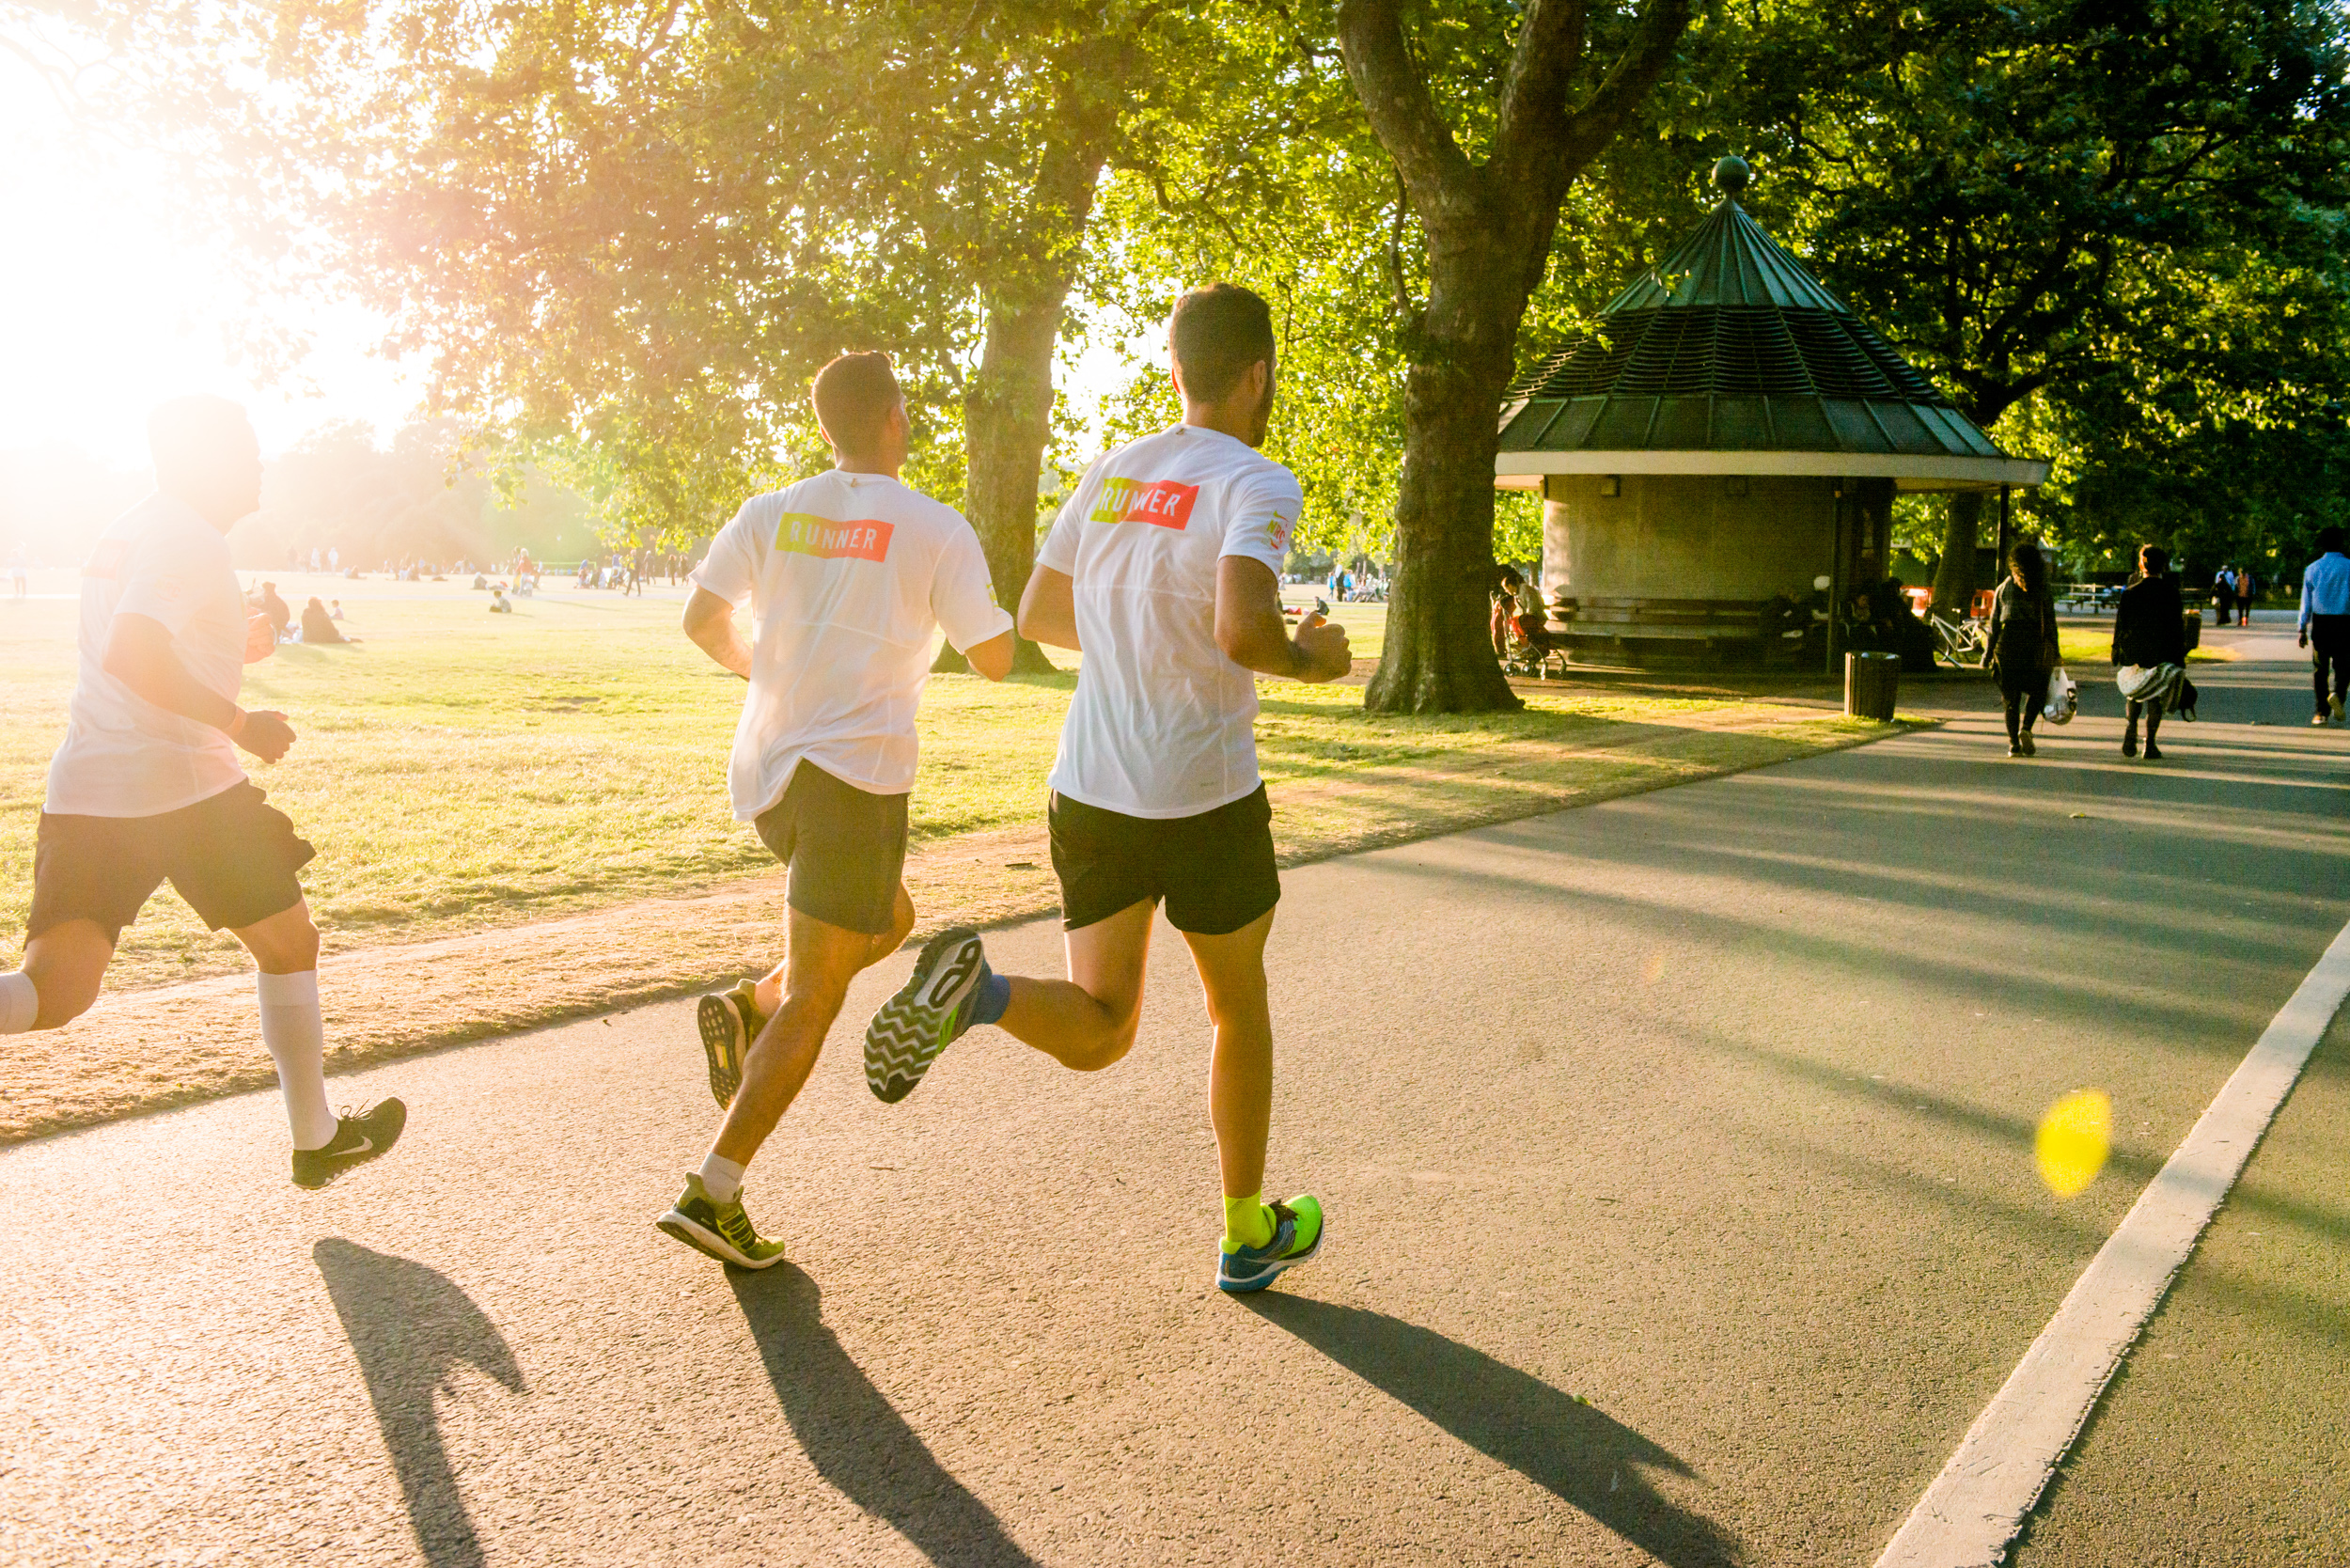 Went for a run, with two cameras hanging from me, on a stunning evening around Hyde Park, for Nike